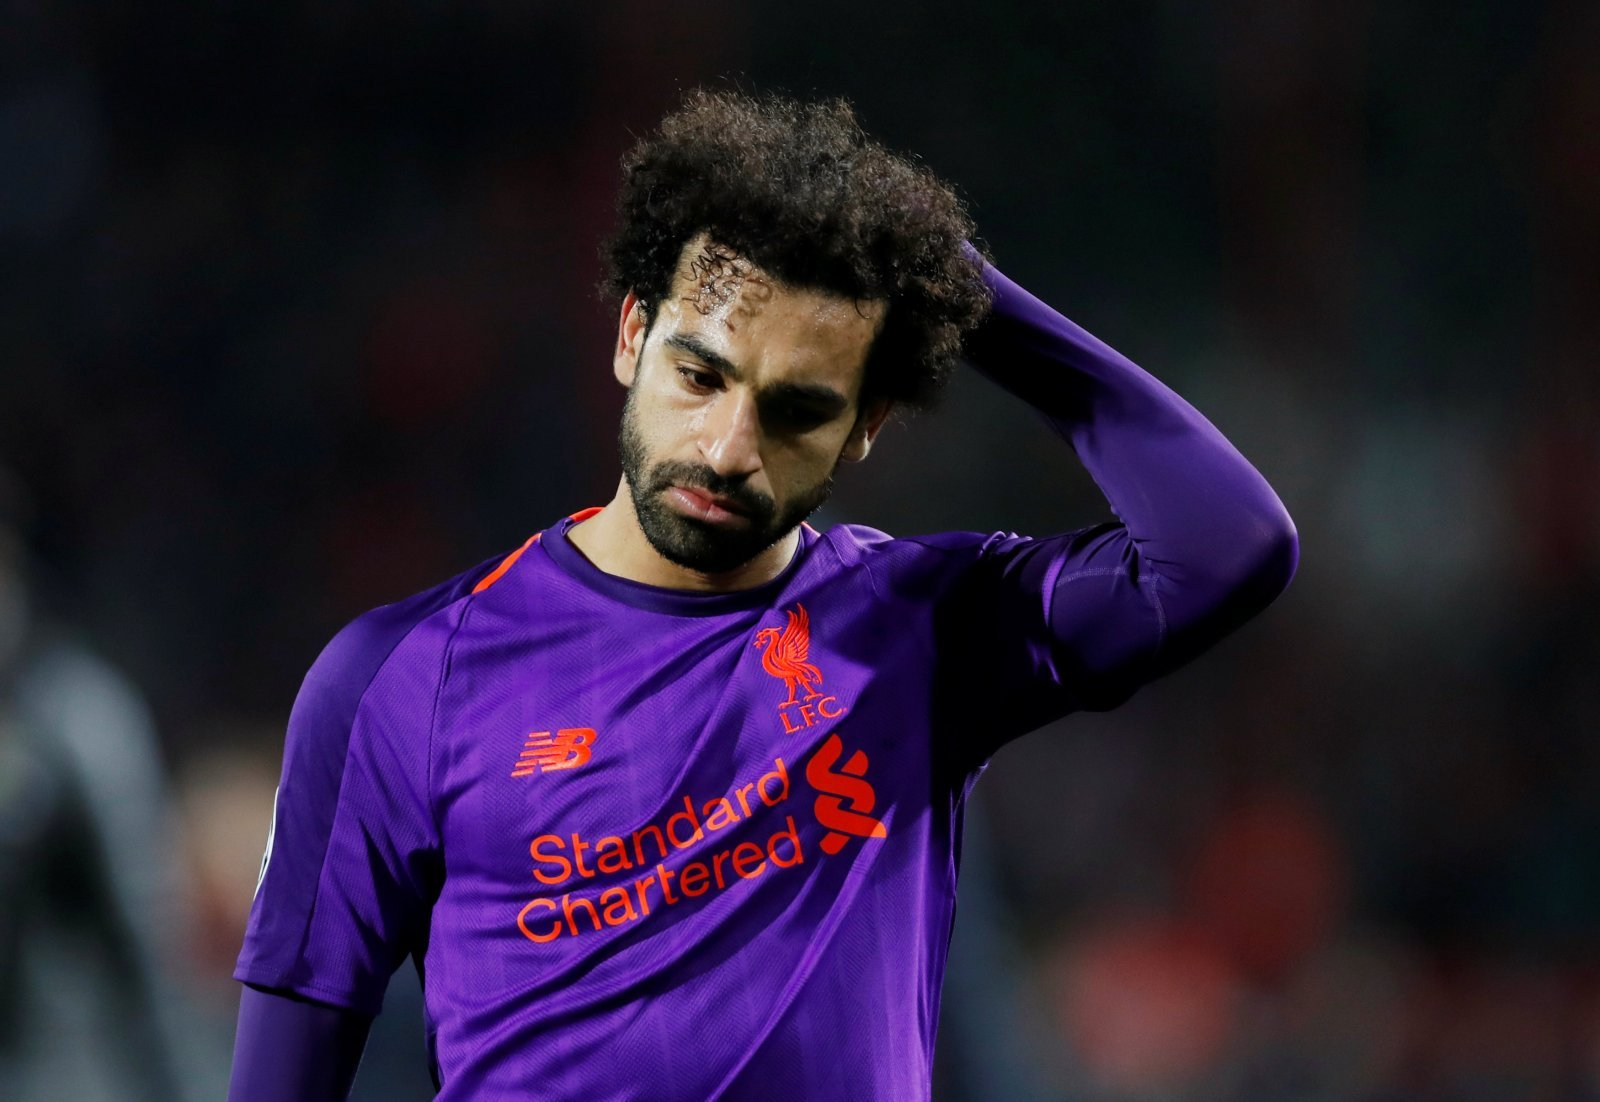 Newcastle fans on Twitter distraught after hearing of failed Mo Salah move